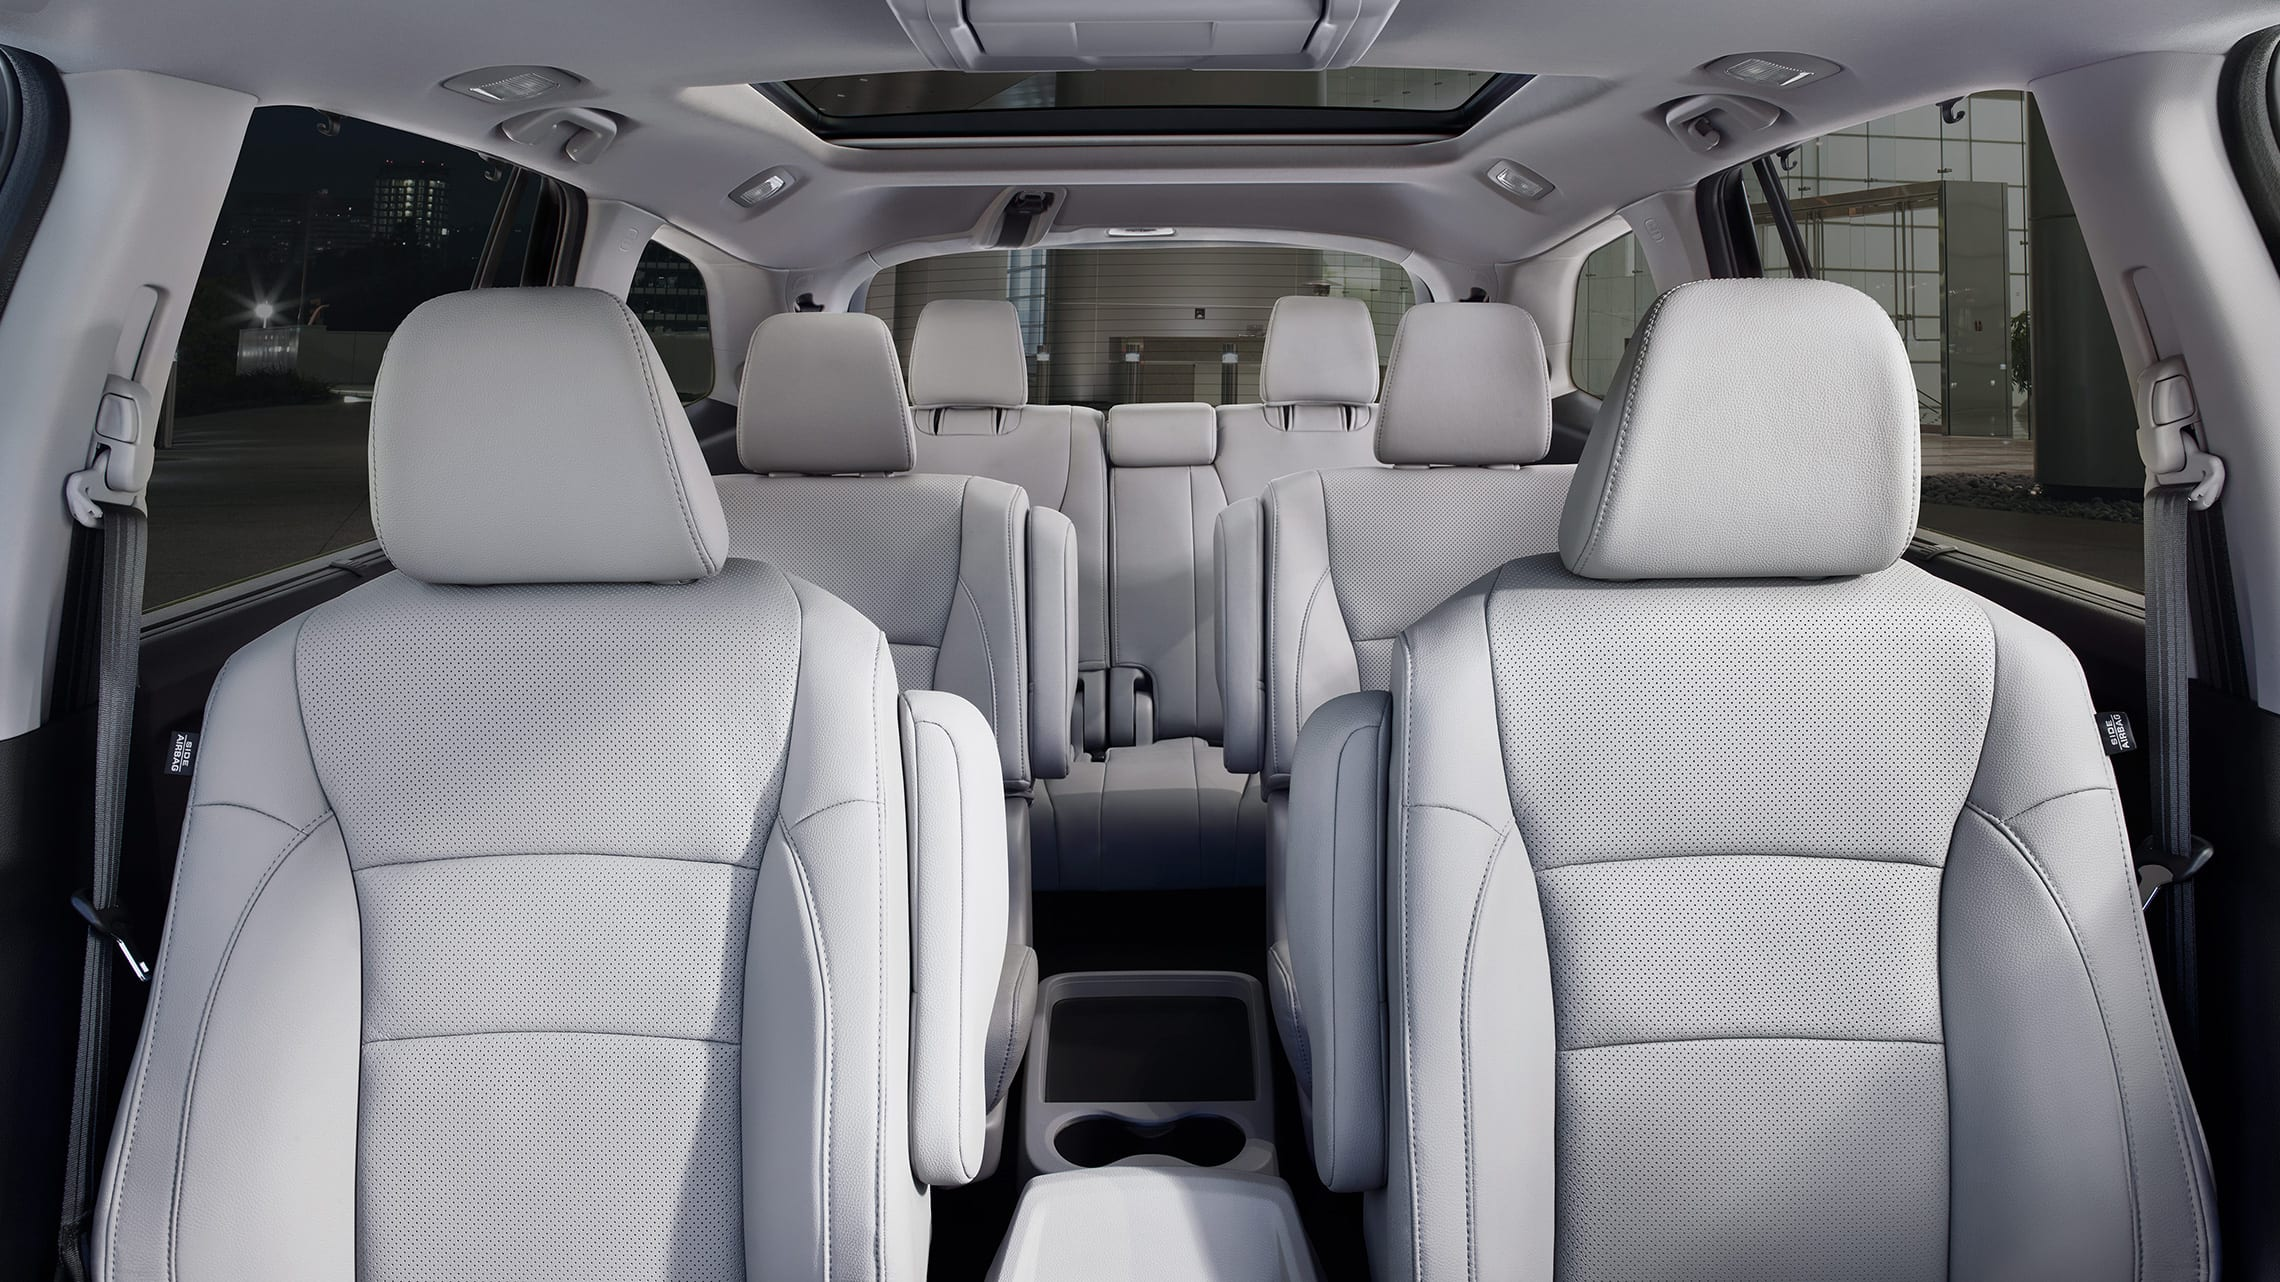 Interior cabin view of 2021 Honda Pilot Elite with Gray Leather and seating for 7.